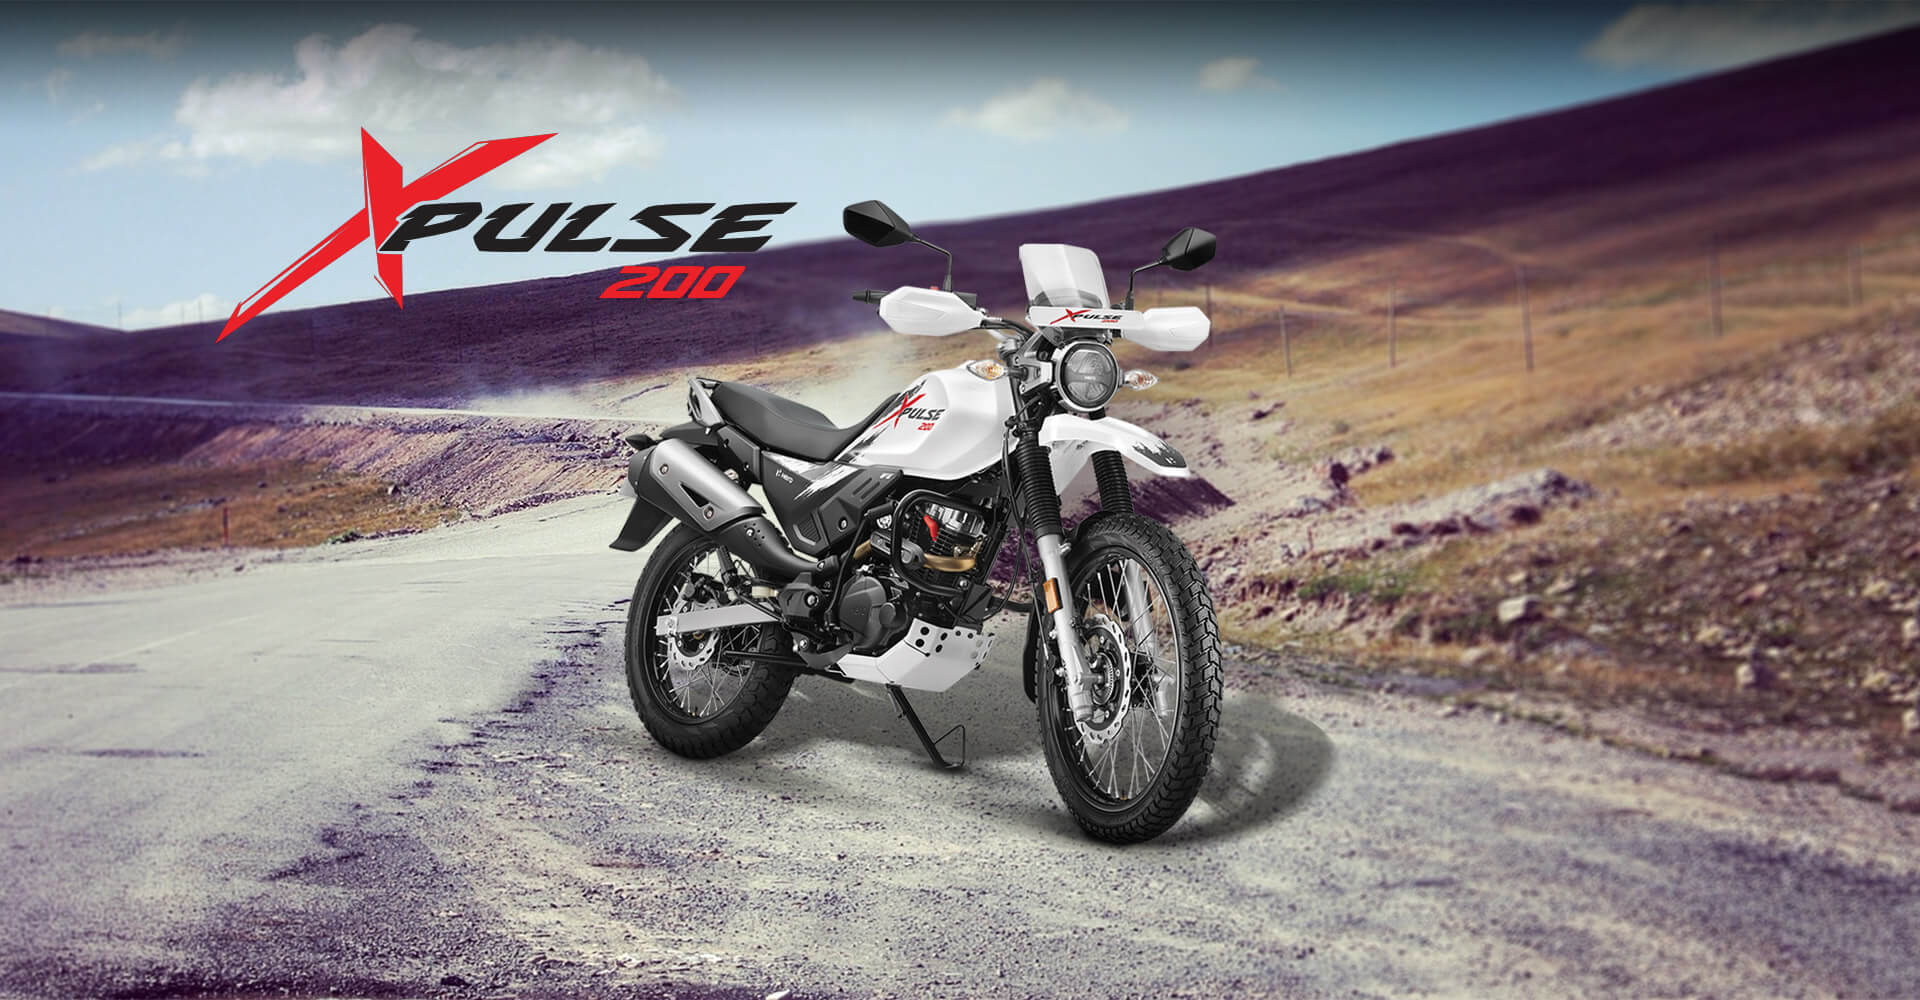 Hero XPulse 200 Till now – specs, features, ride-experience, performance, Price, Review, Comparison and more.